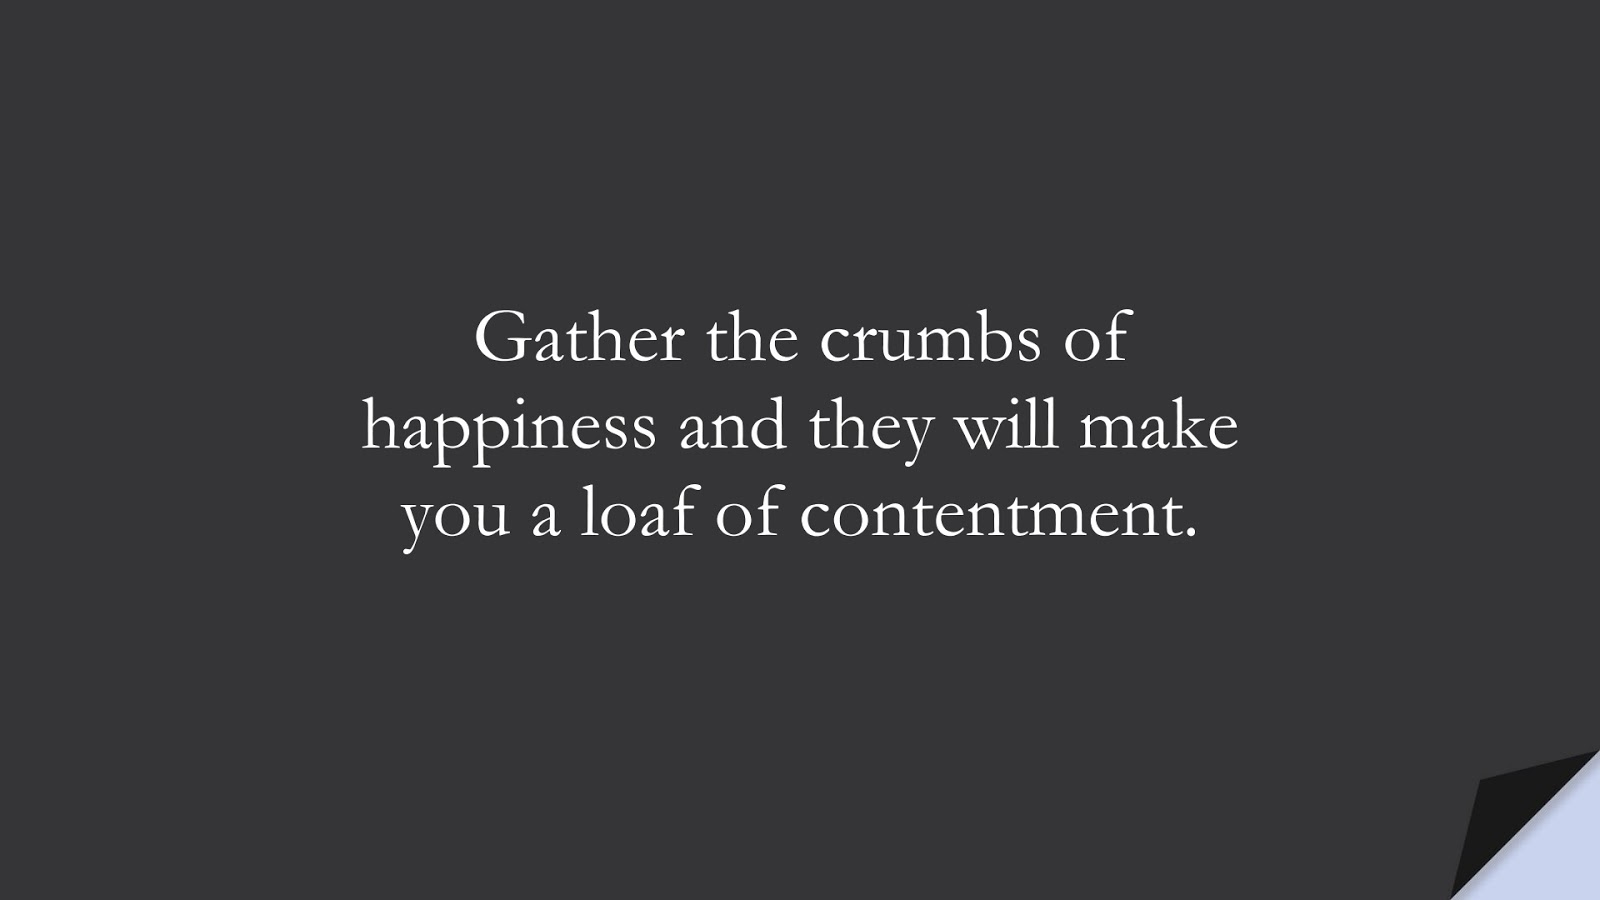 Gather the crumbs of happiness and they will make you a loaf of contentment.FALSE